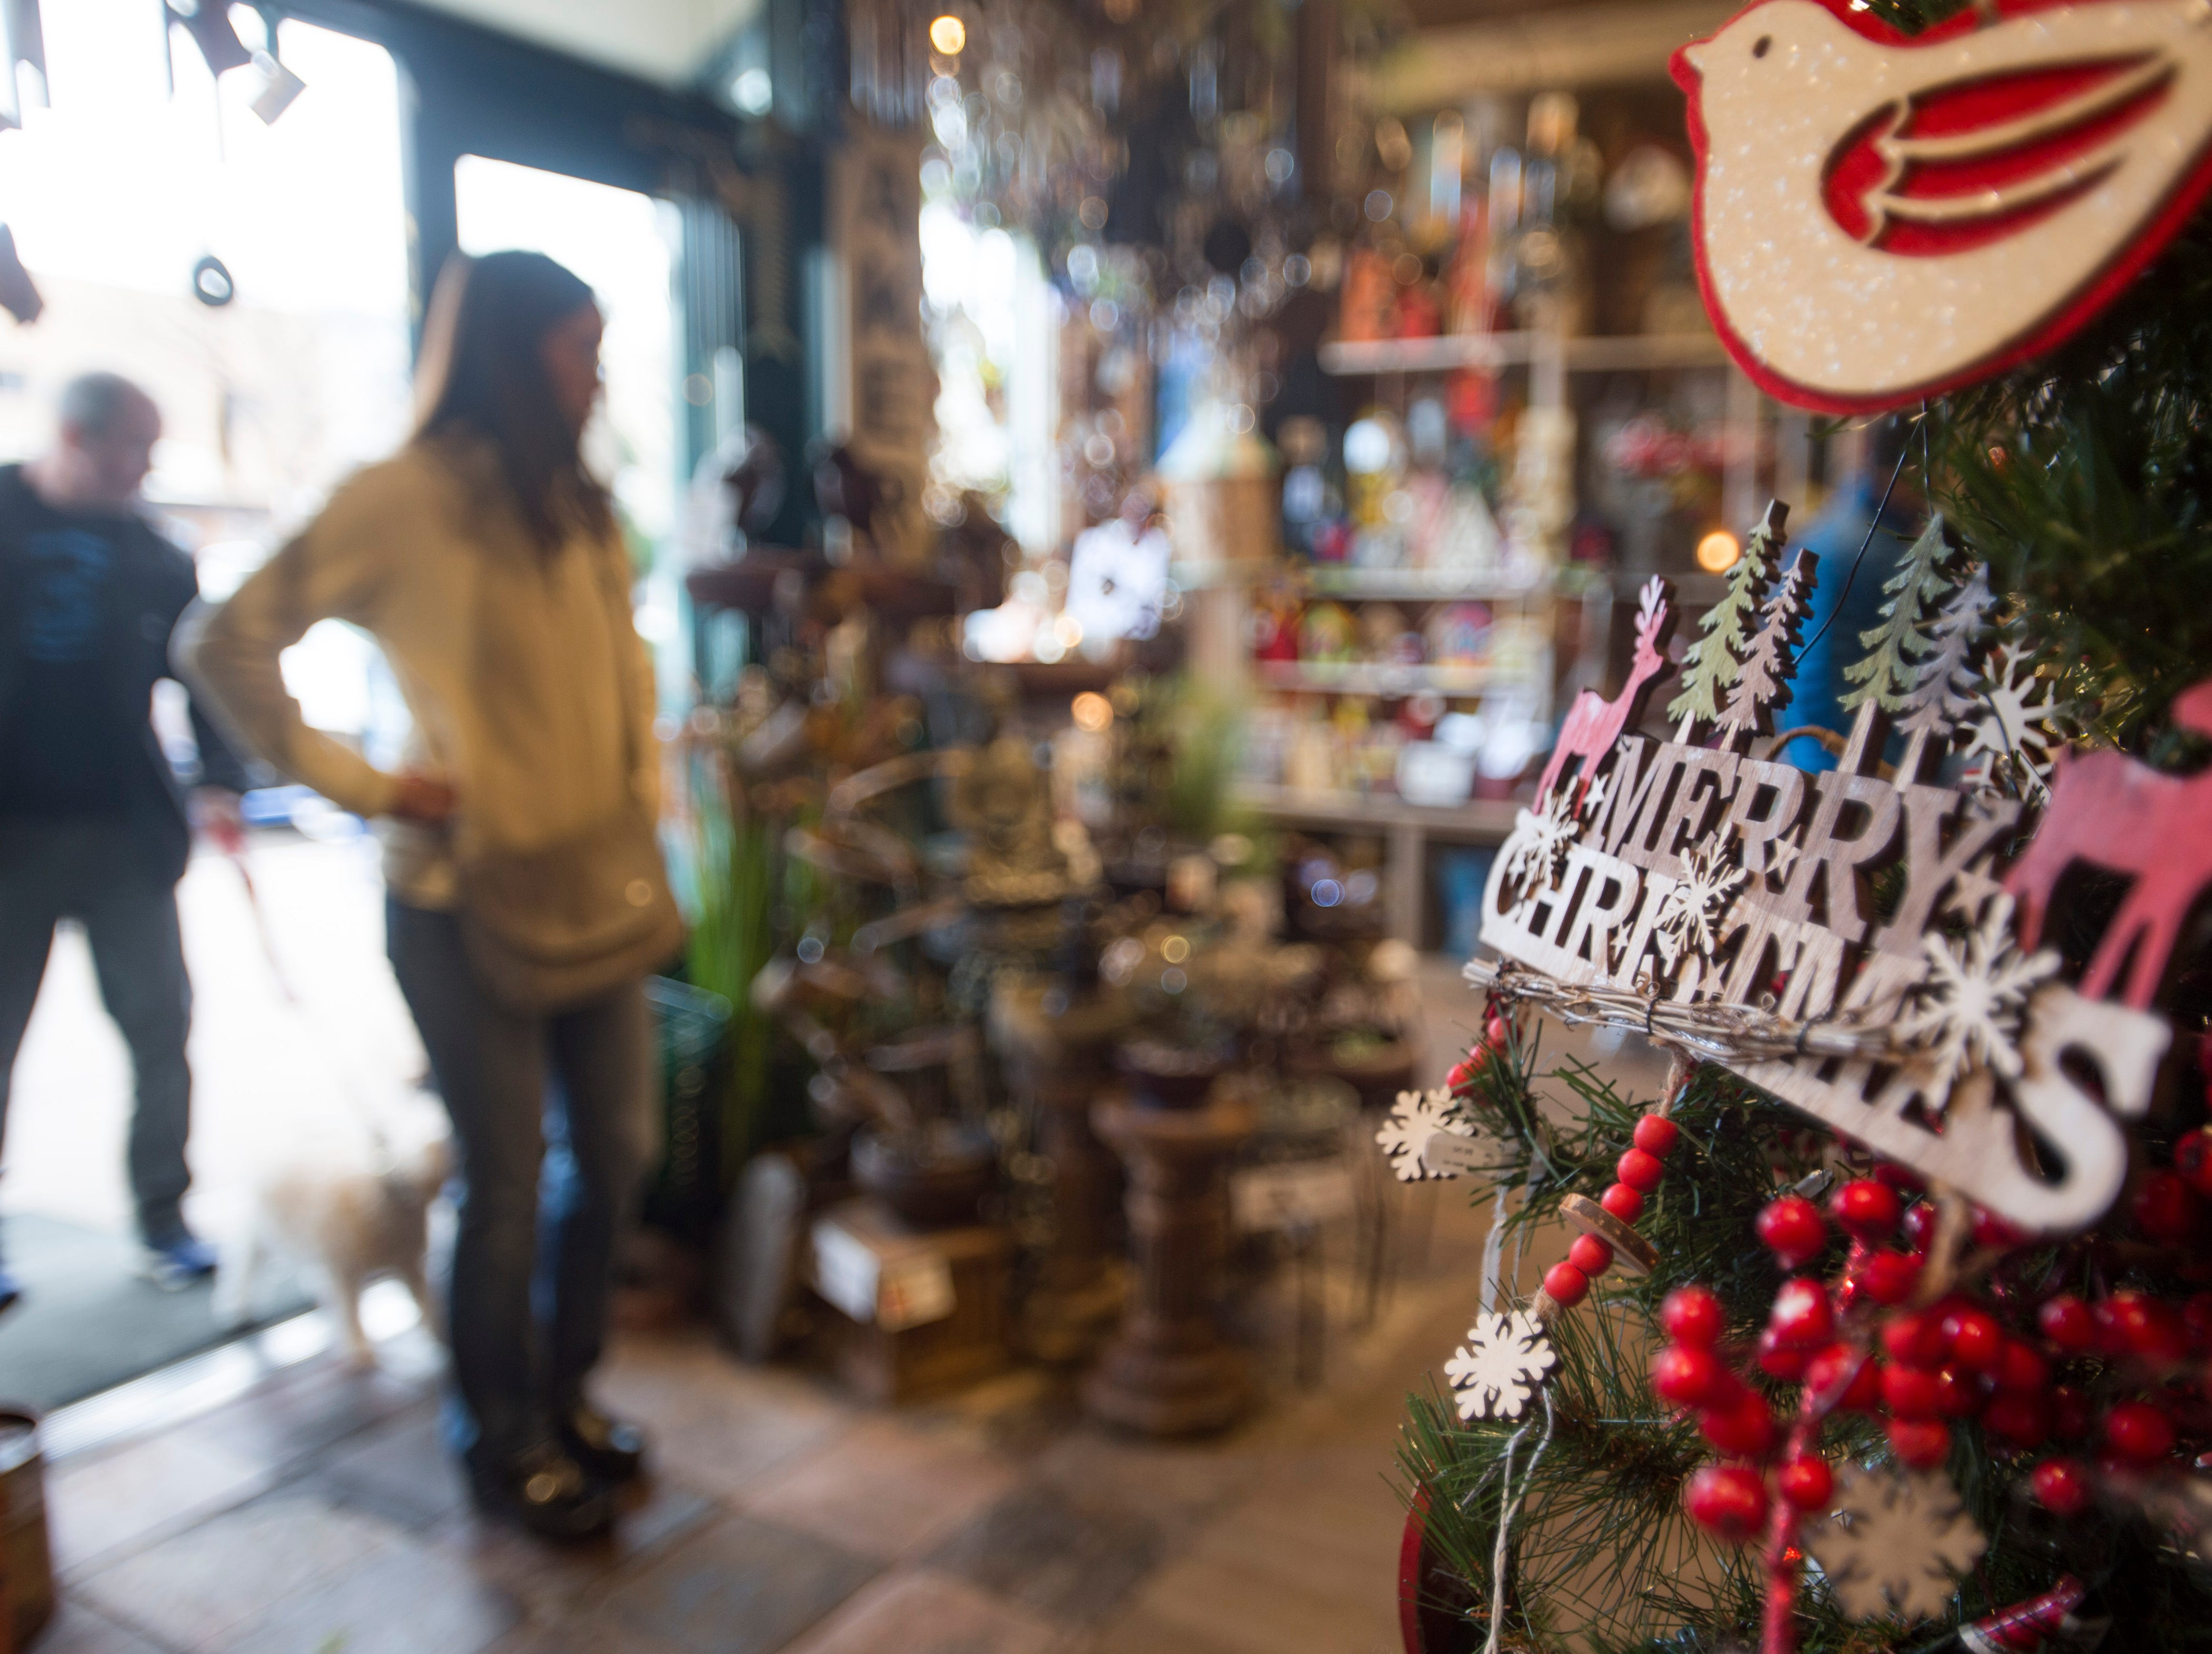 People walk into The Perennial Gardener for last-minute holiday shopping in Old Town on Monday, December 24, 2018.